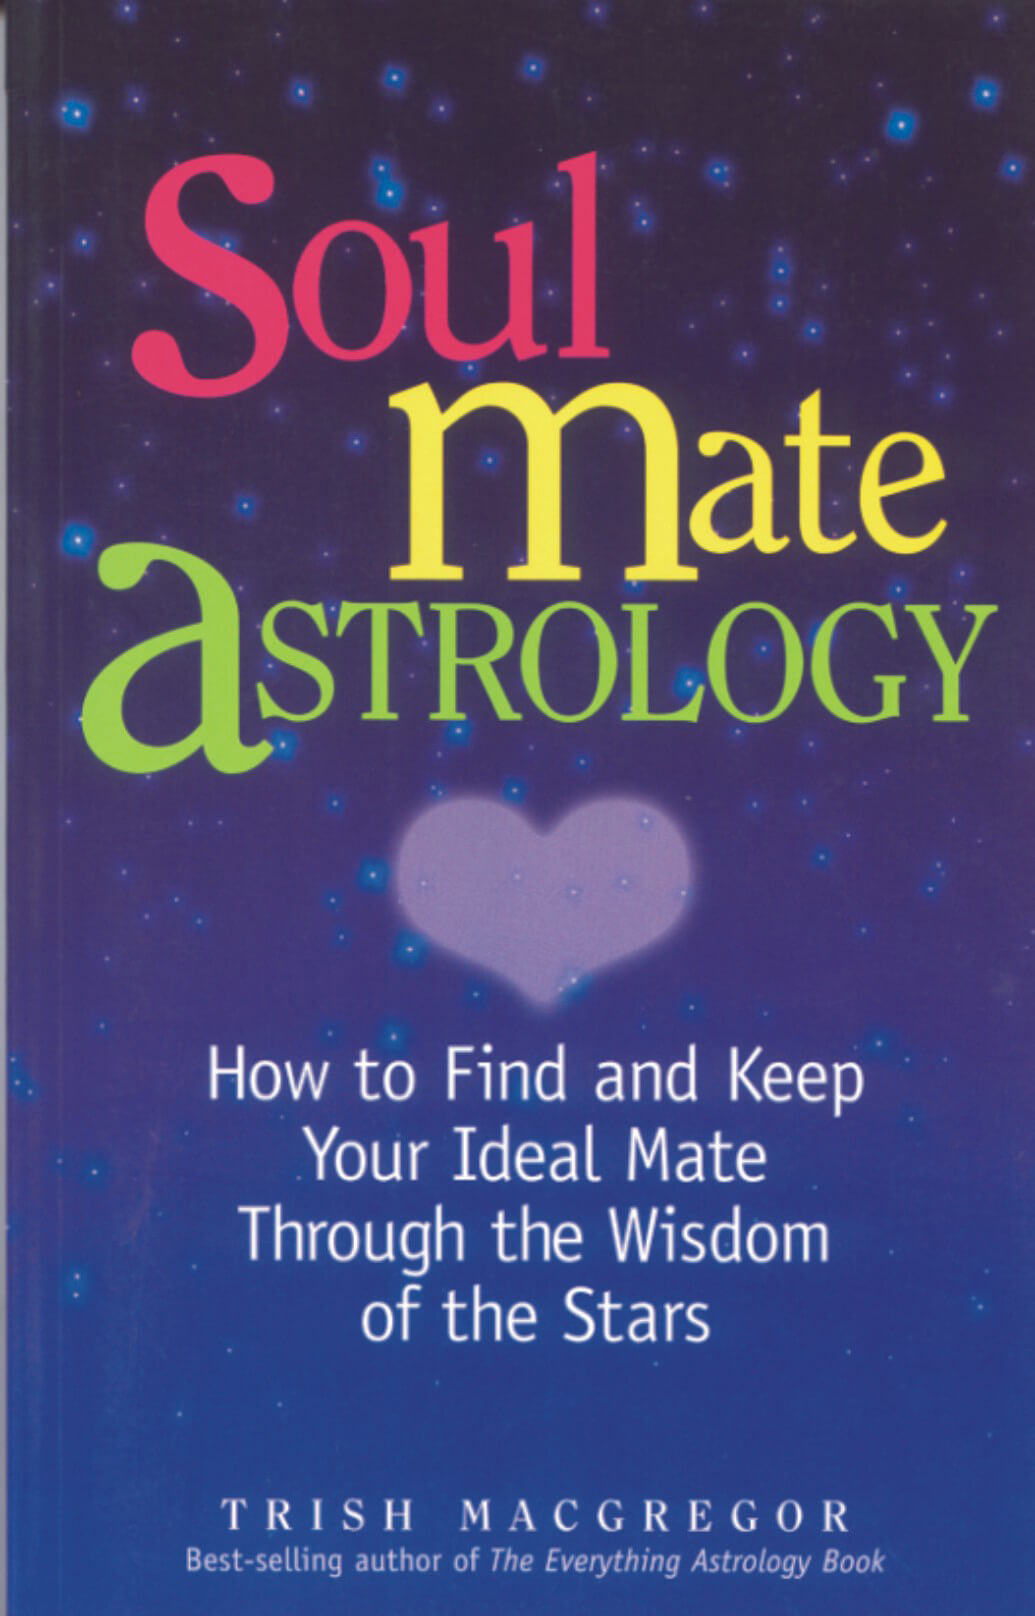 Soulmate Astrology: How To Find And Keep Your Ideal Mate Through The Wisdom Of The Stars